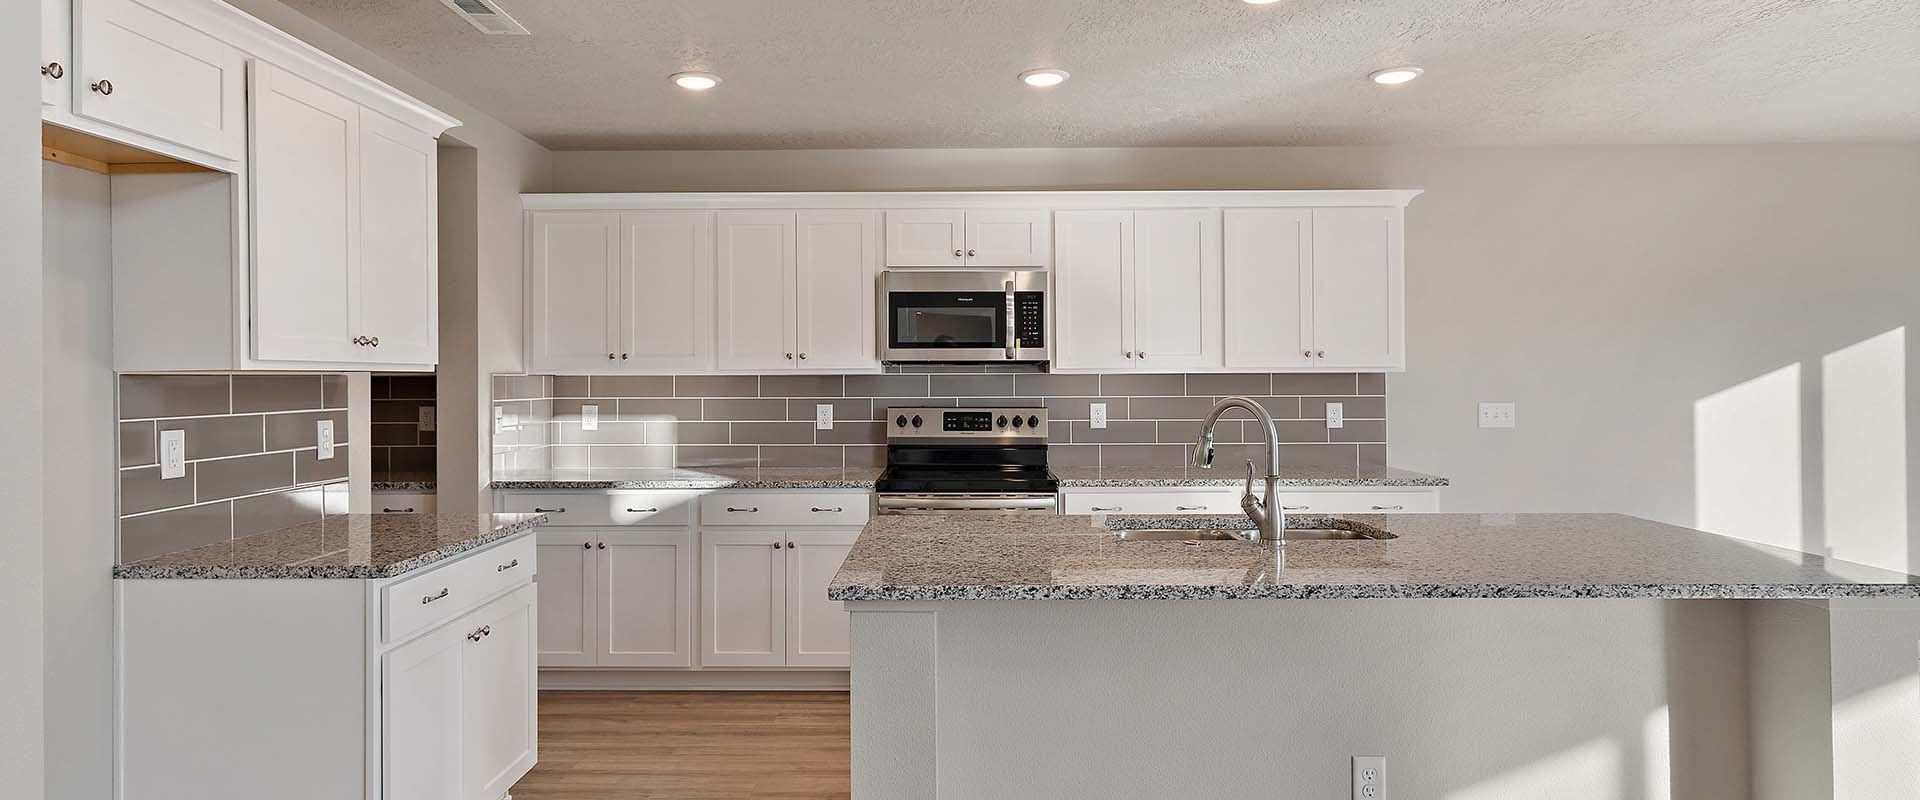 Topaz-Kitchen2-new-homes-boise-idaho-hubble-homes.jpg